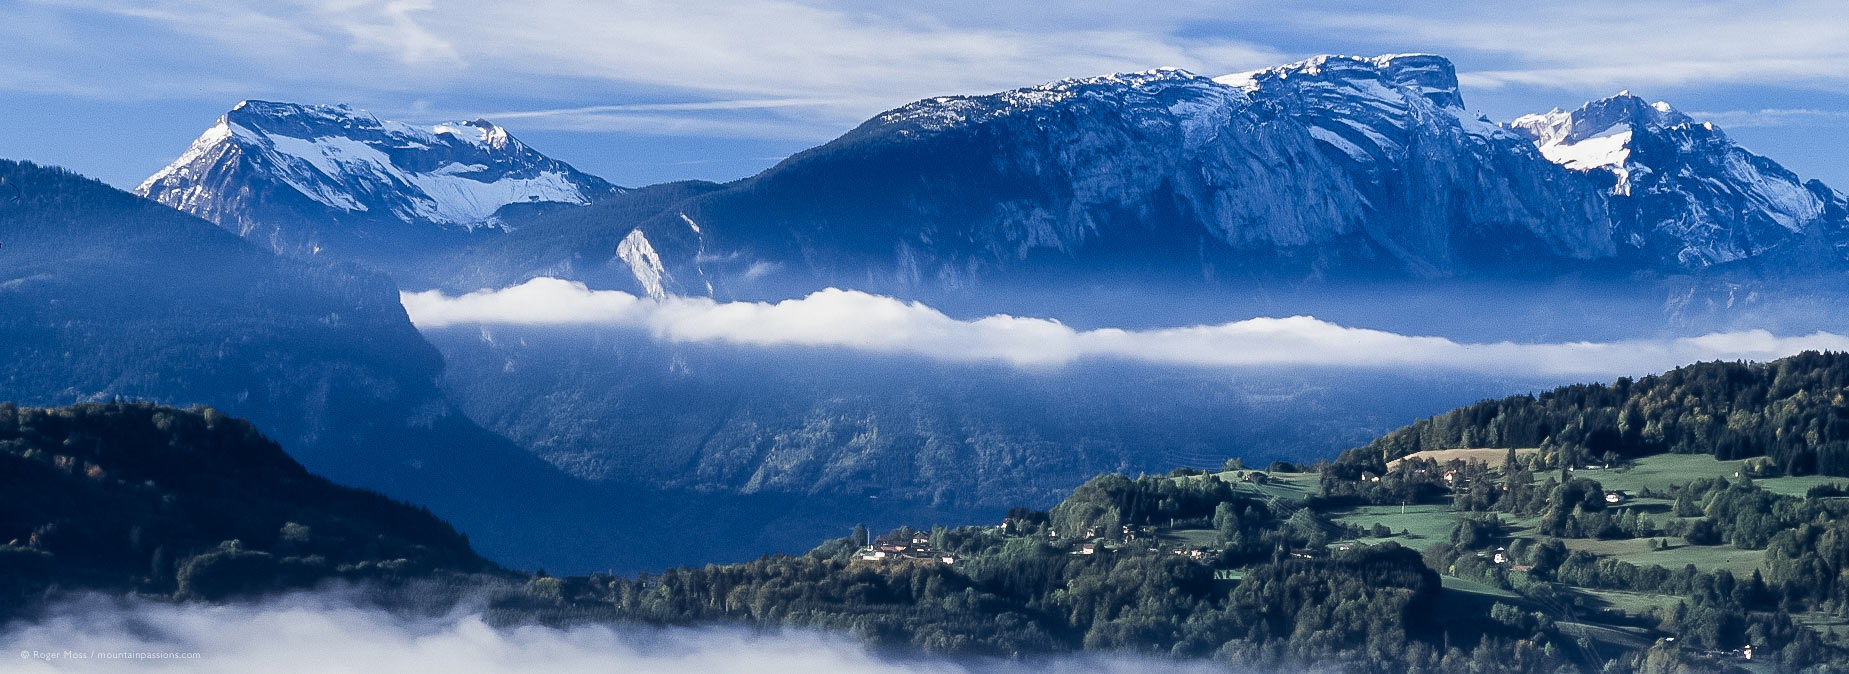 Wide overview of mountain landscape with morning mist from Route des Grandes Alpes above Tanninges, French Alps.